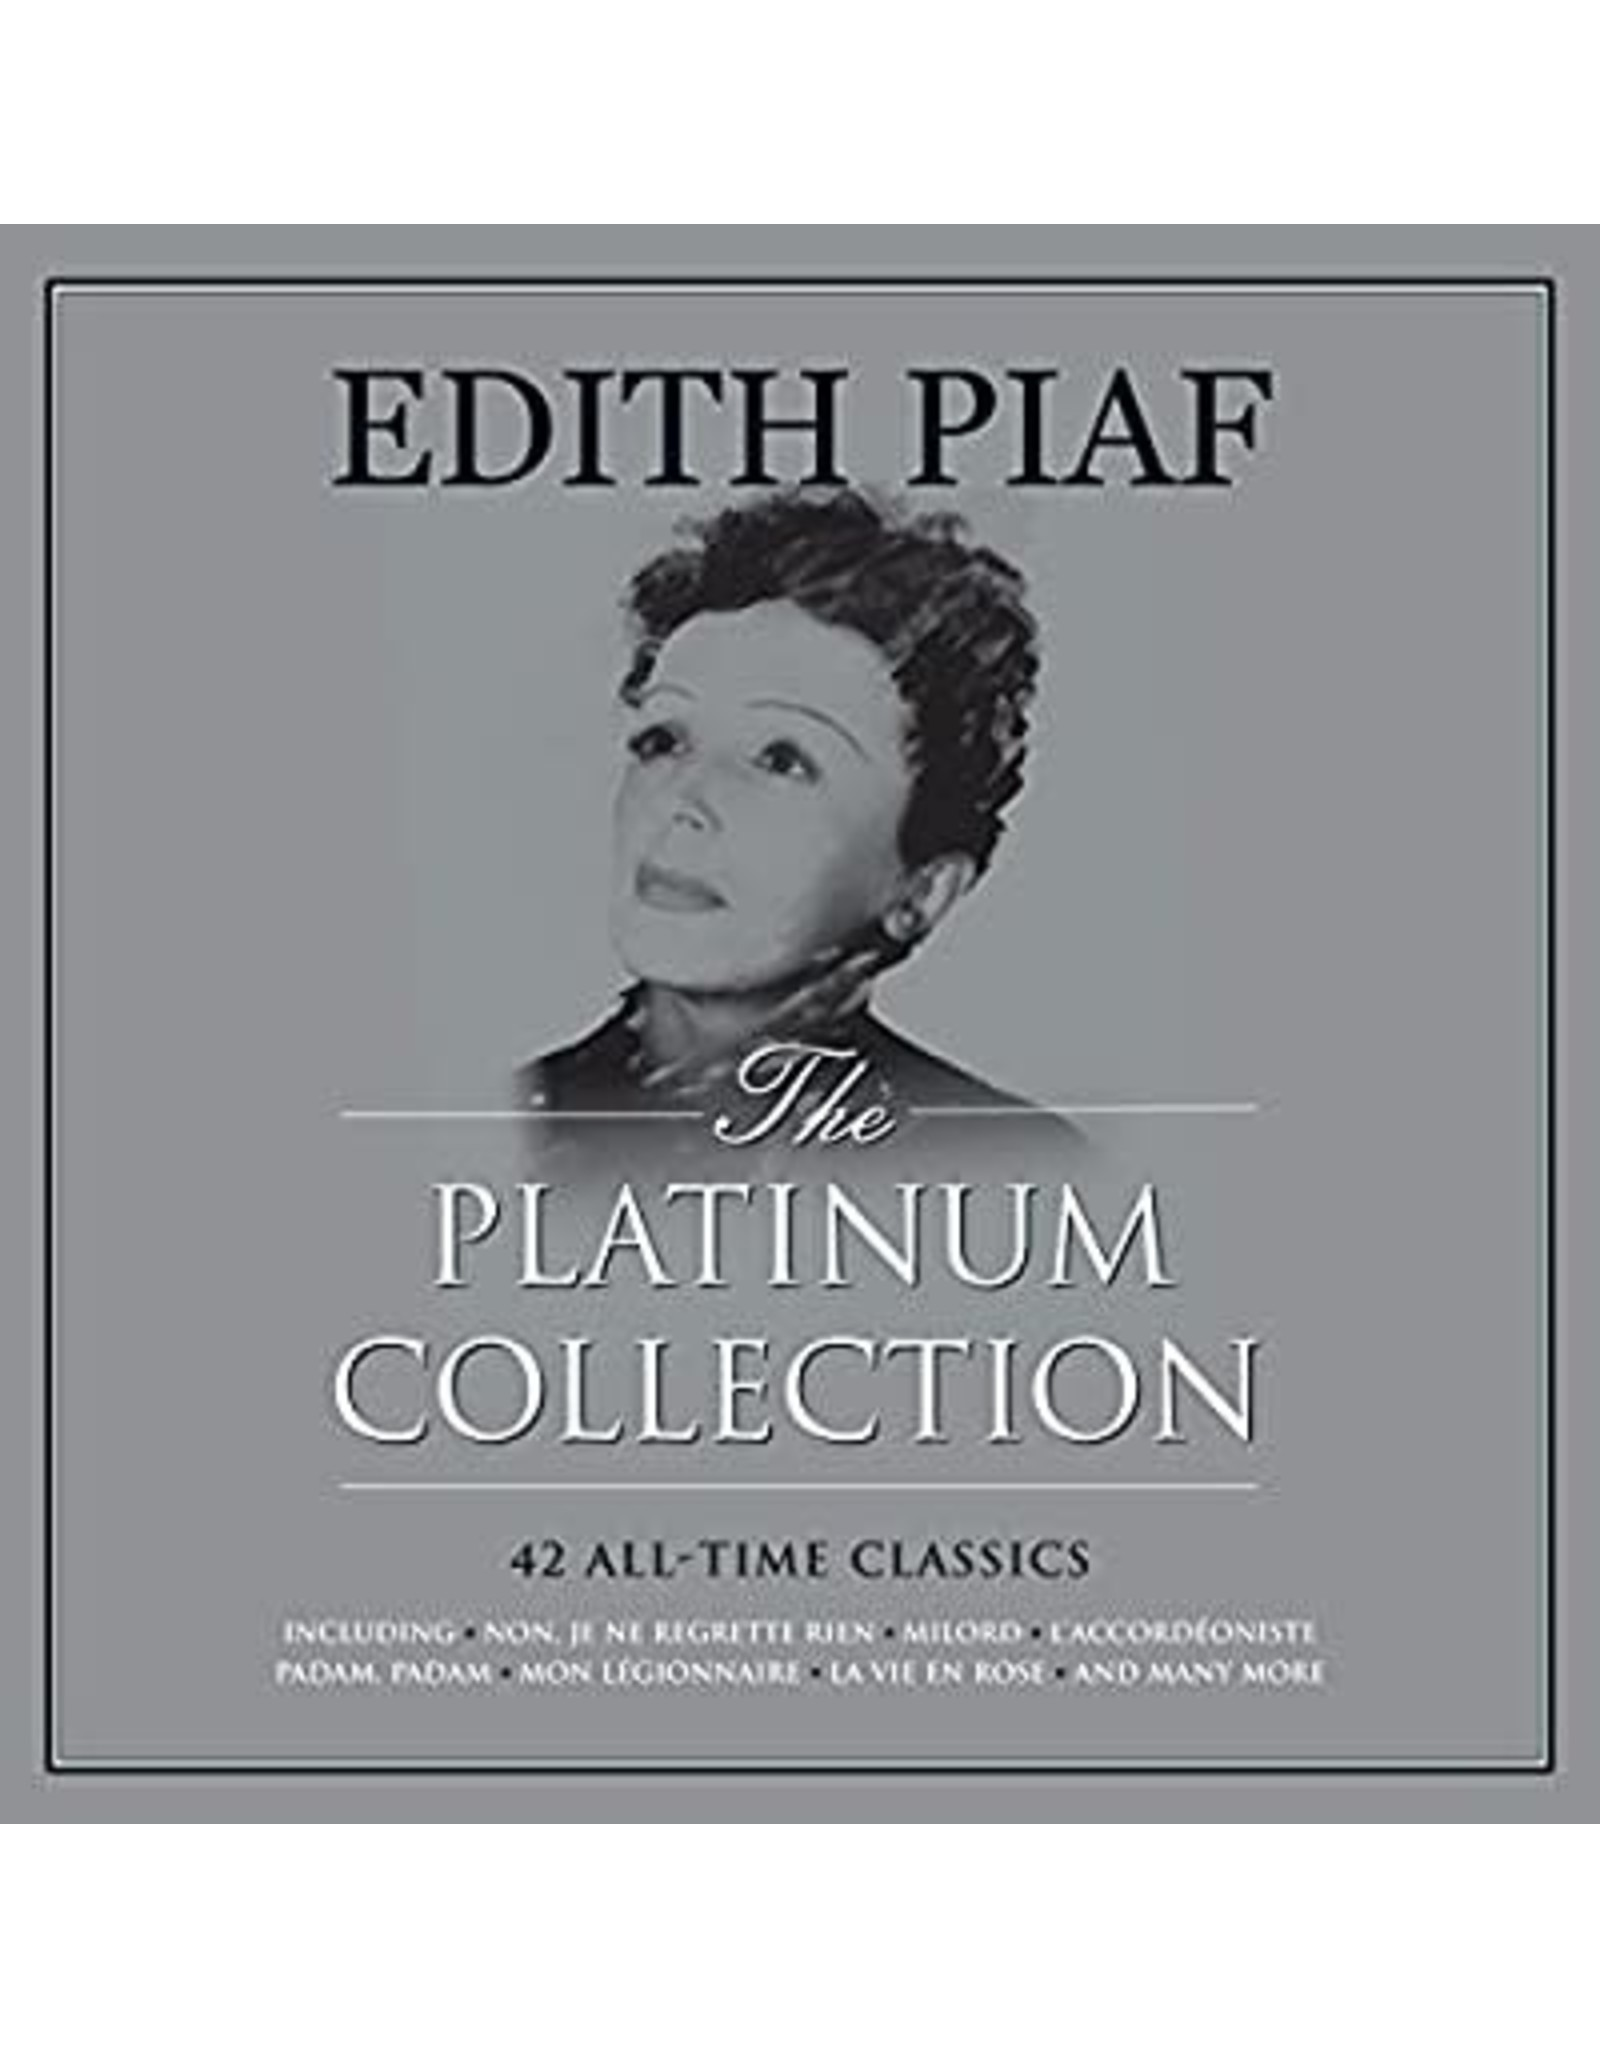 New Vinyl Edith Piaf - The Platinum Collection 3LP